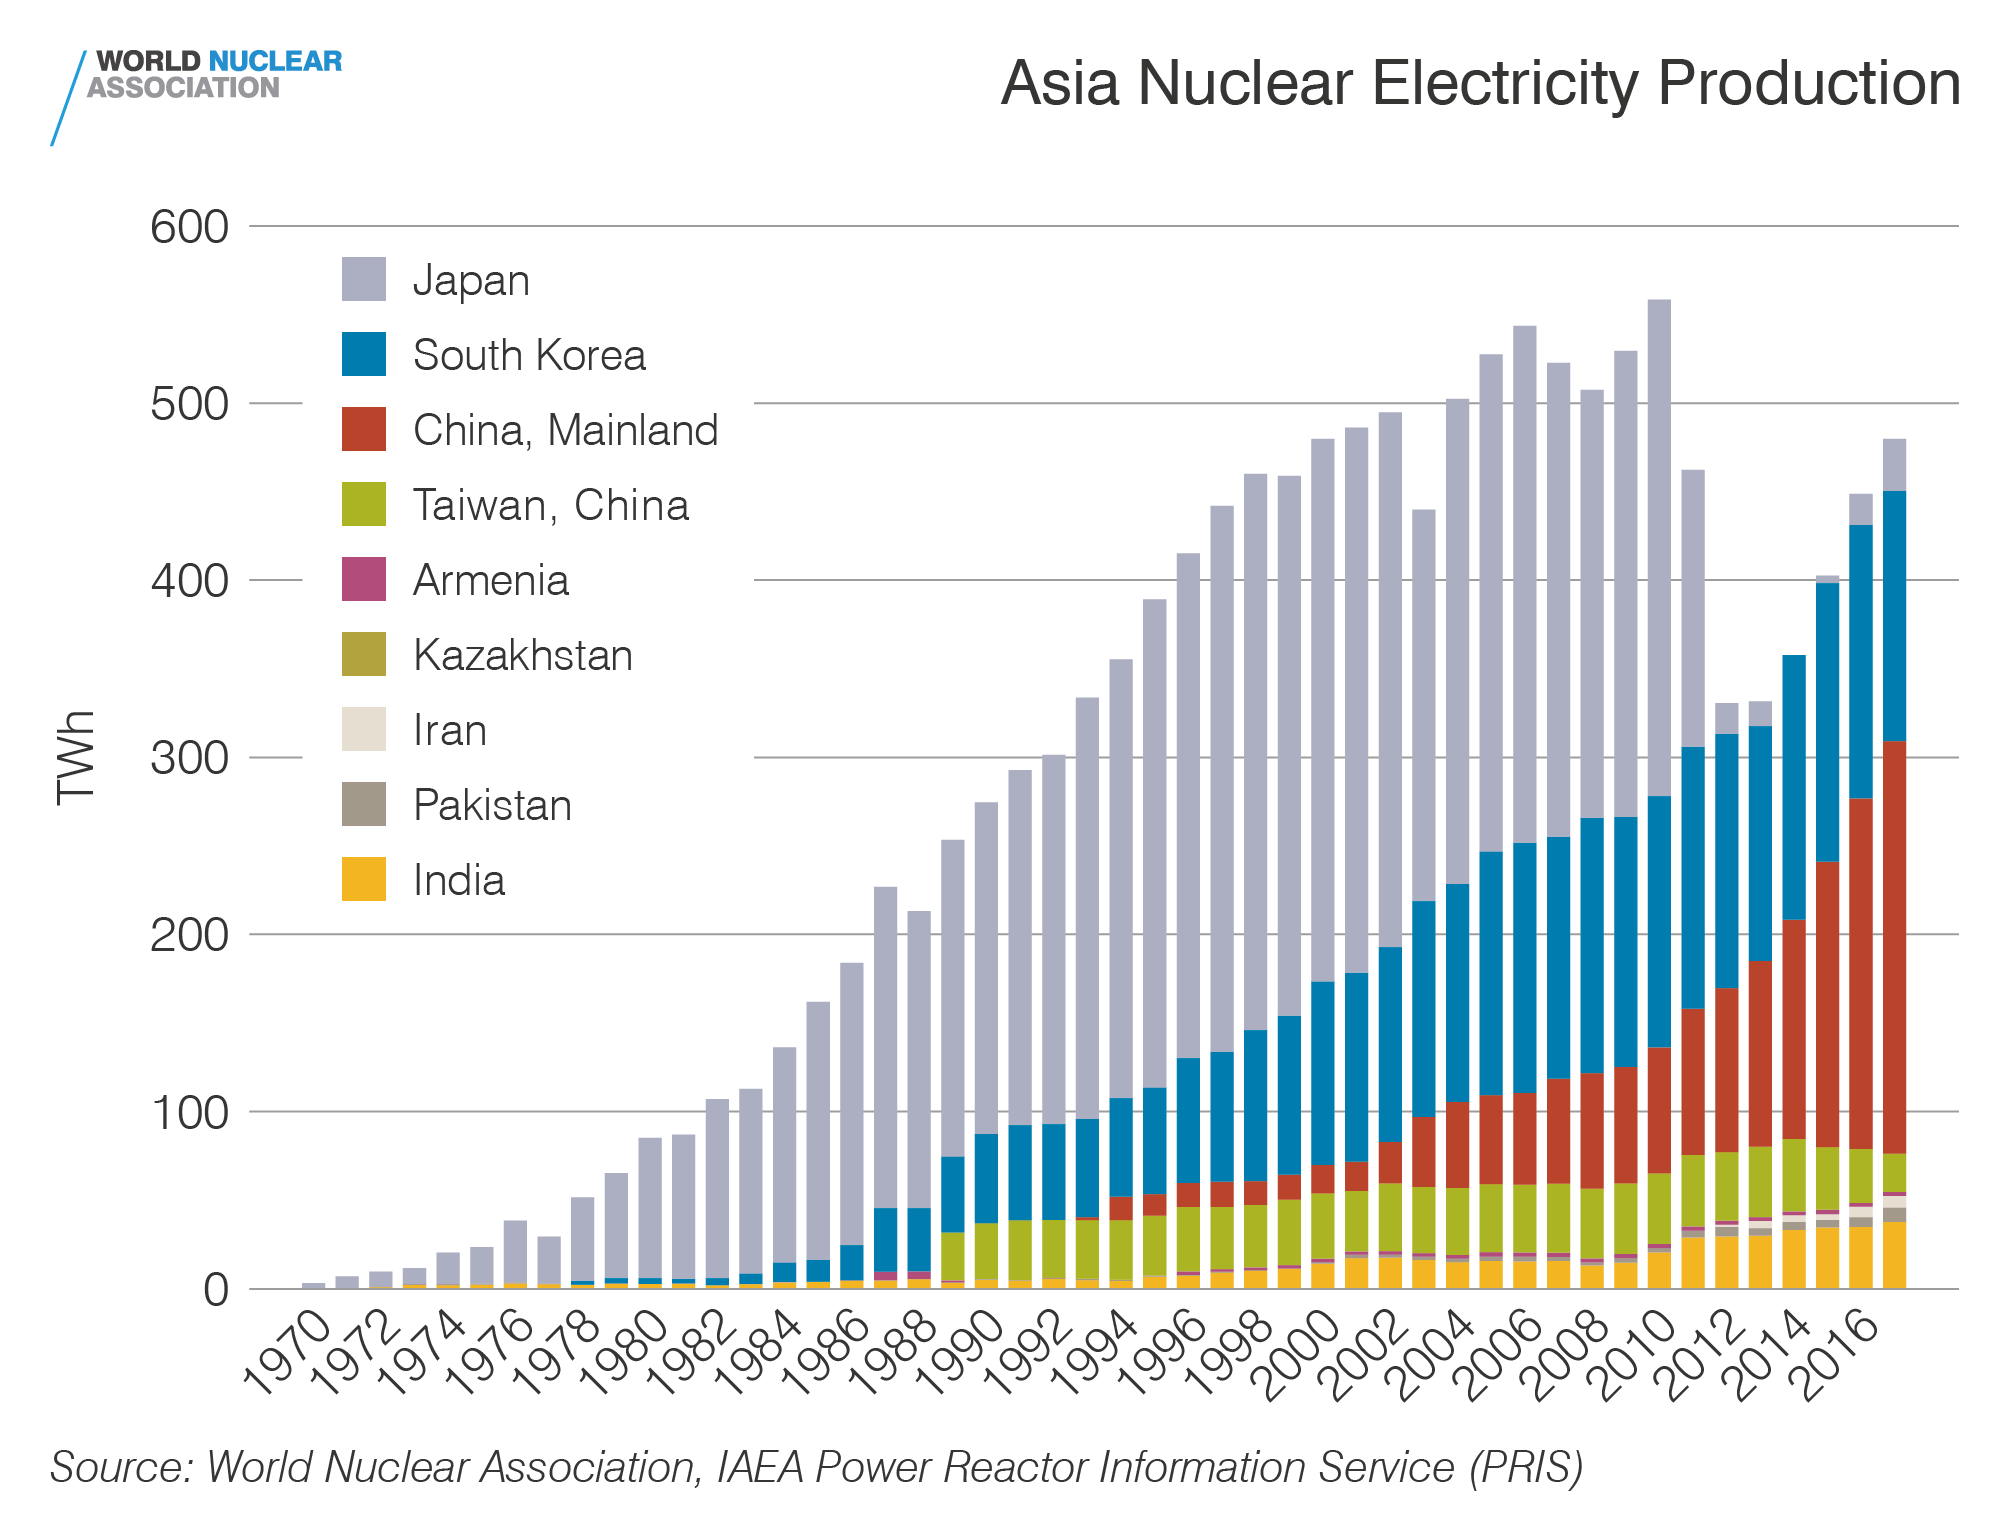 Asia nuclear electricity production